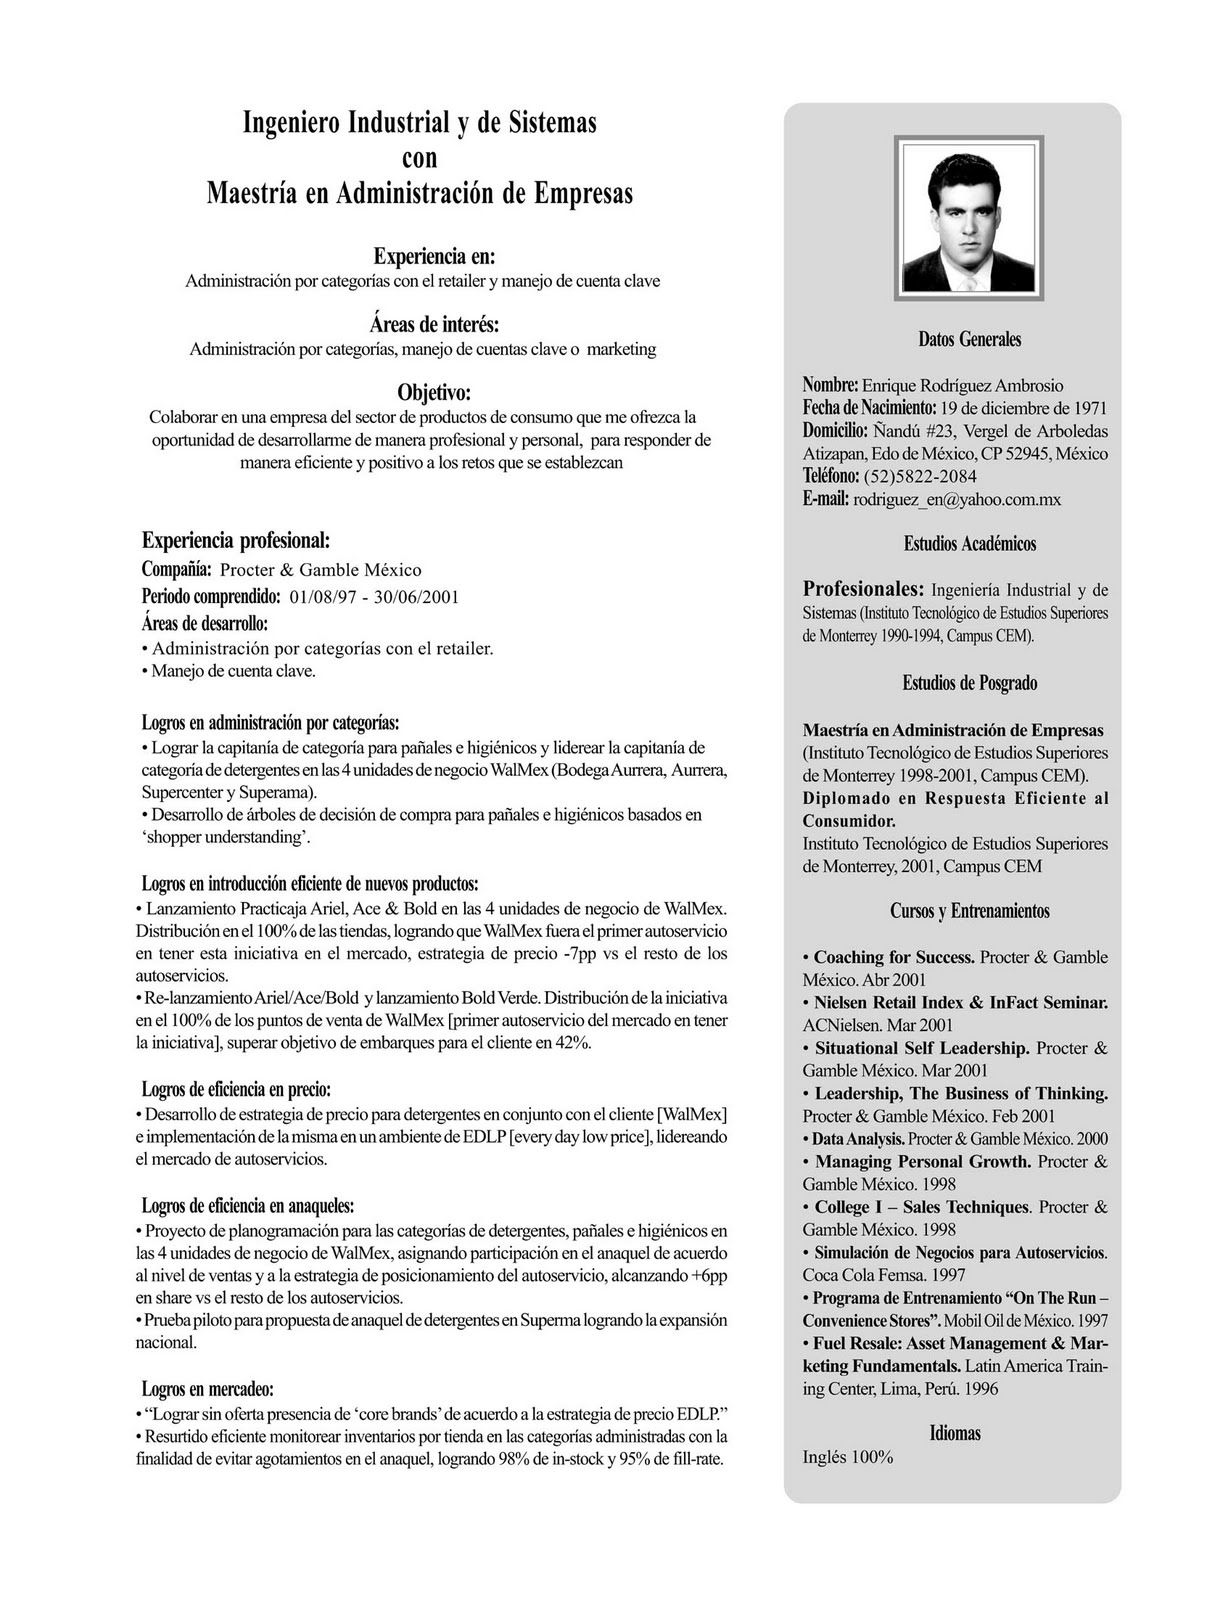 Curriculum Vitae Espanol Ejemplo Lilzeu Tattoo De | Occupations Unit ...